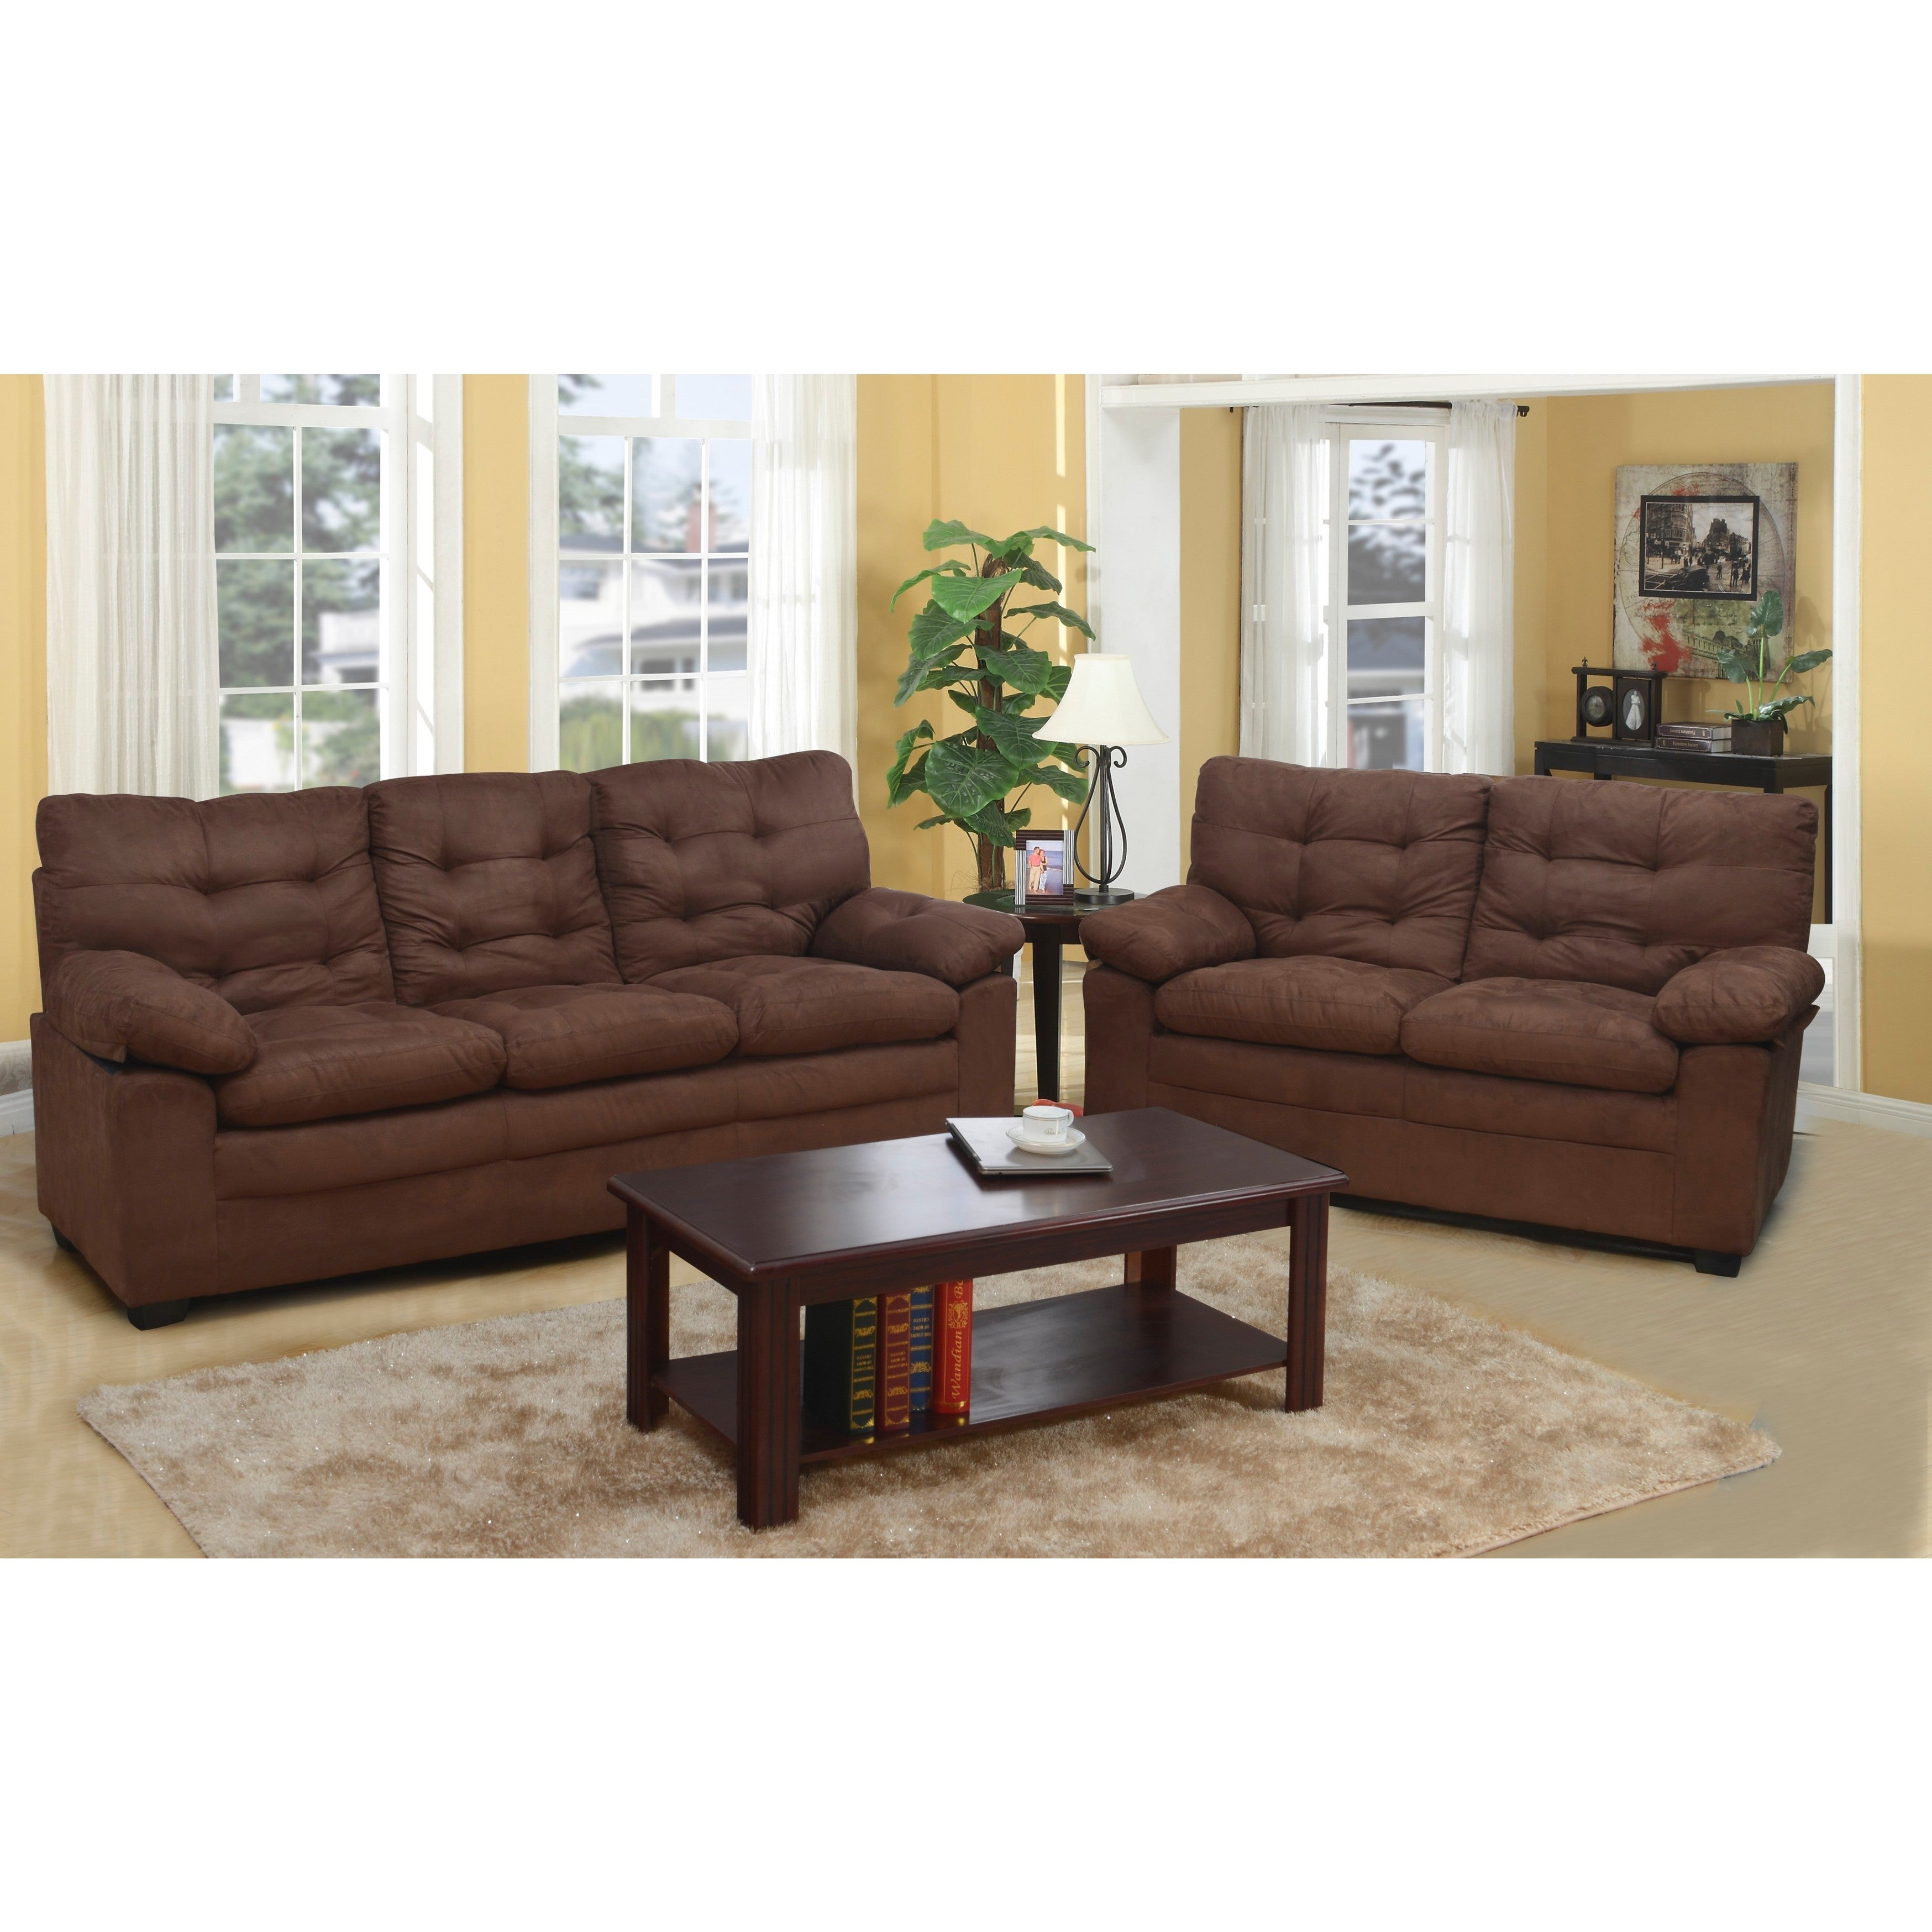 Chocolate Microfiber Tufted Sofa   Free Shipping Today   Overstock.com    17085988